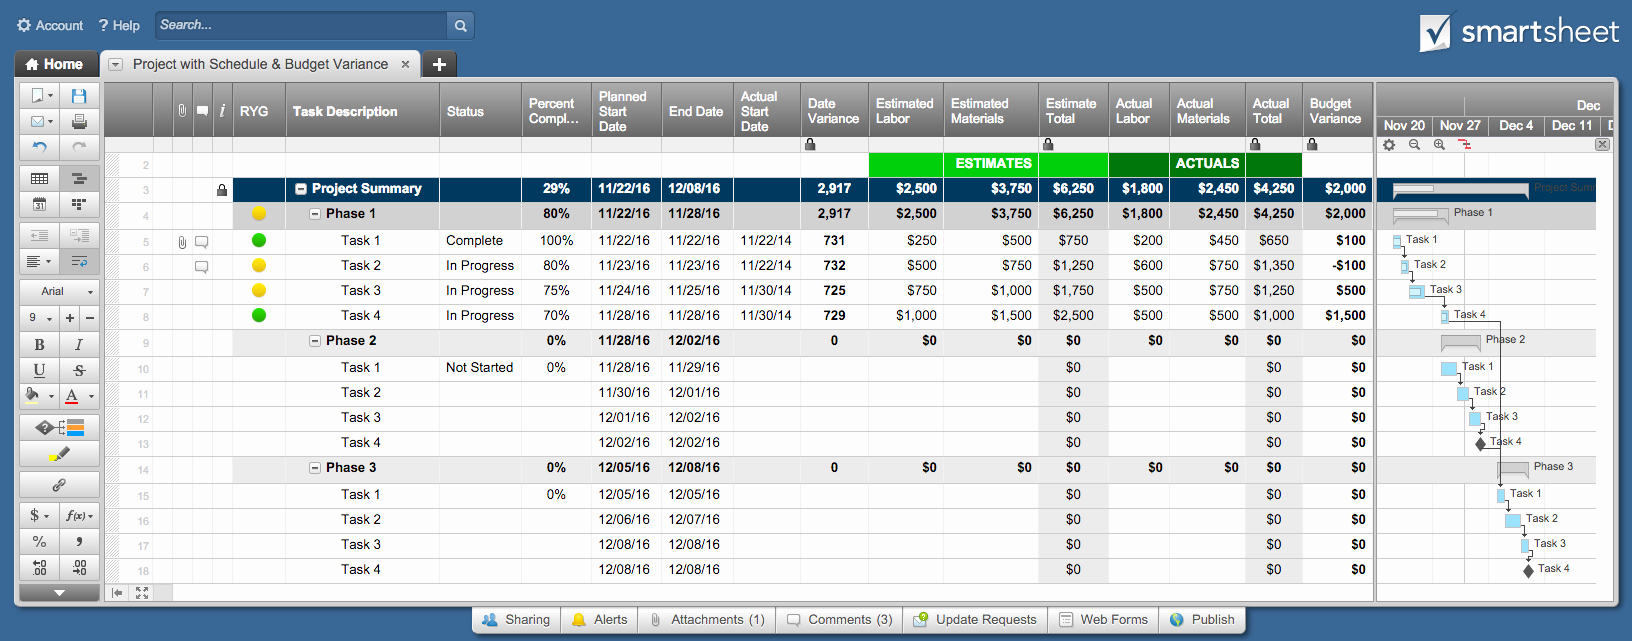 Project Management Schedule Template Excel Luxury Free Excel Project Management Templates